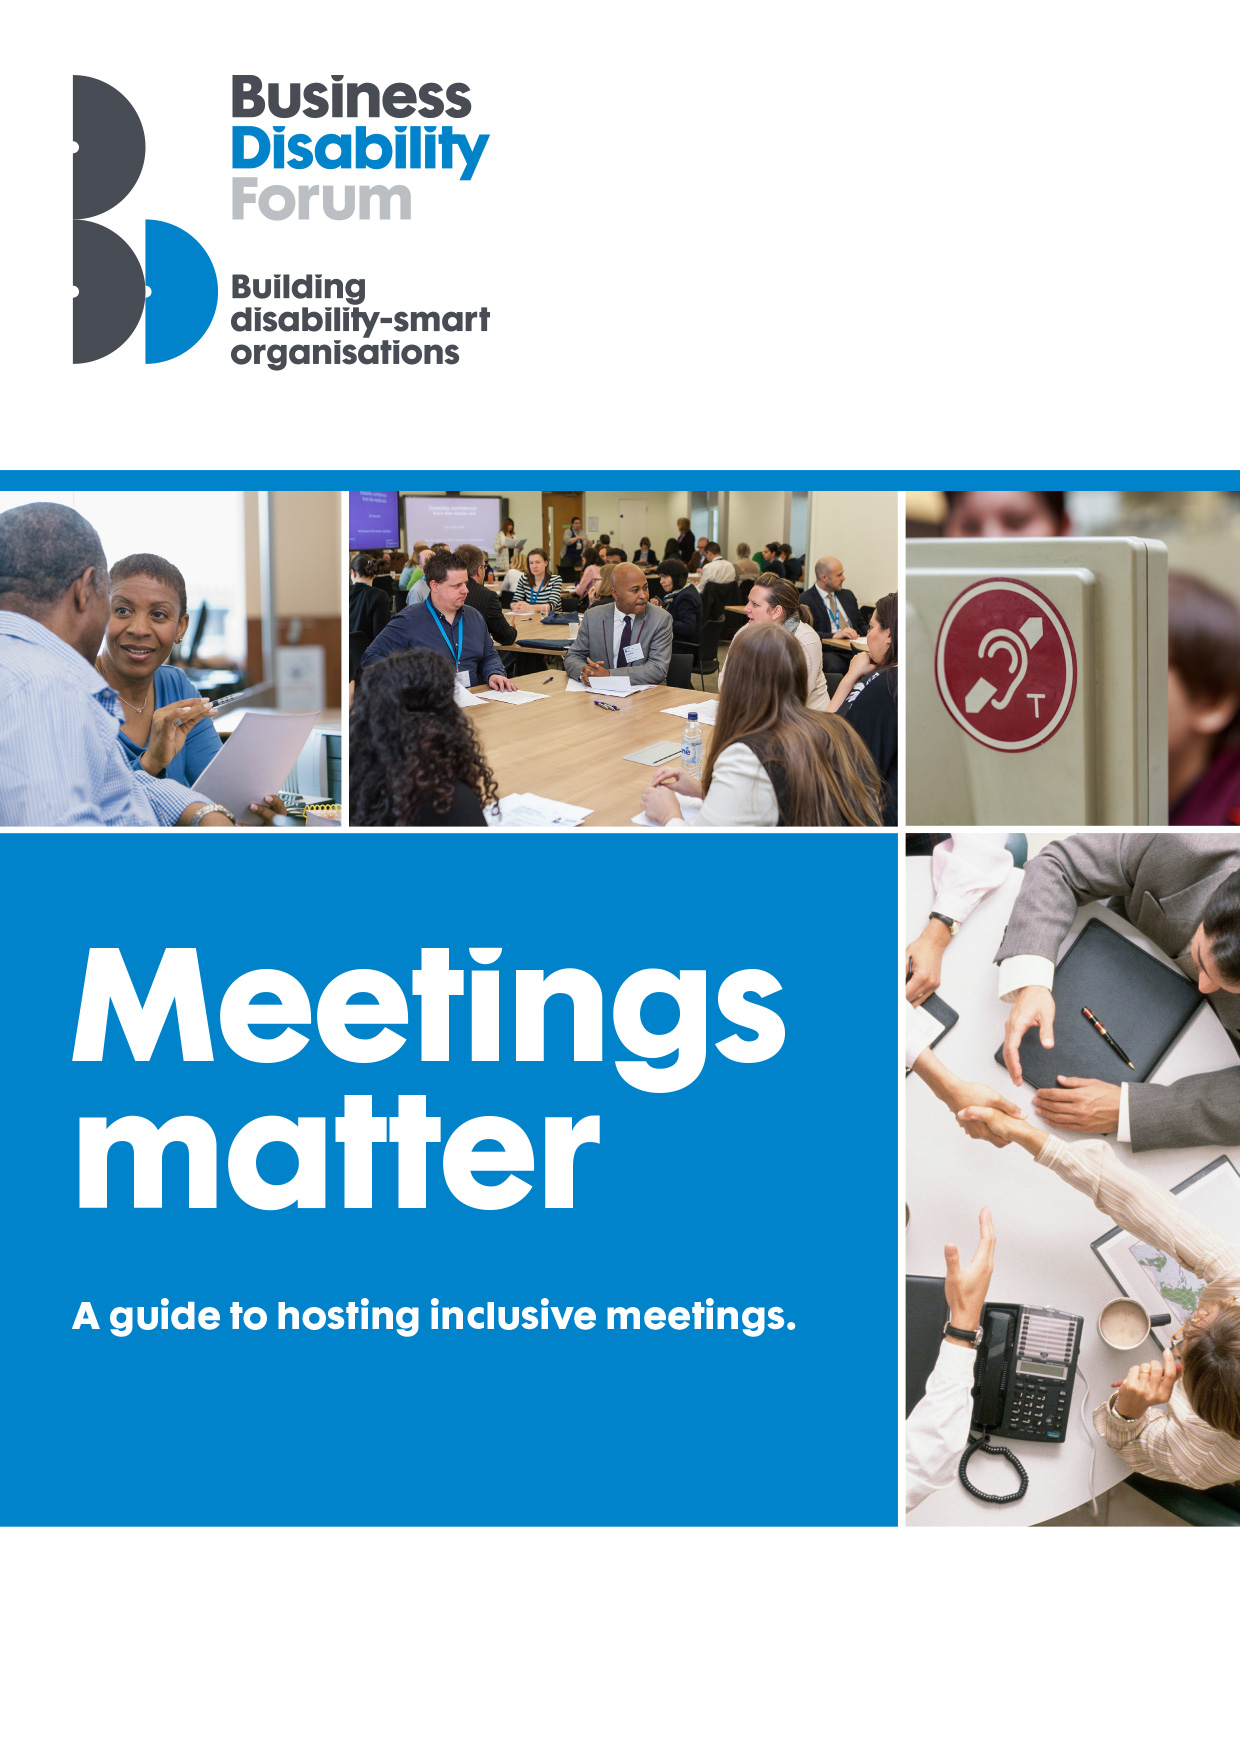 Business Disability Forum Meetings matter guide - A guide to hosting inclusive meetings.